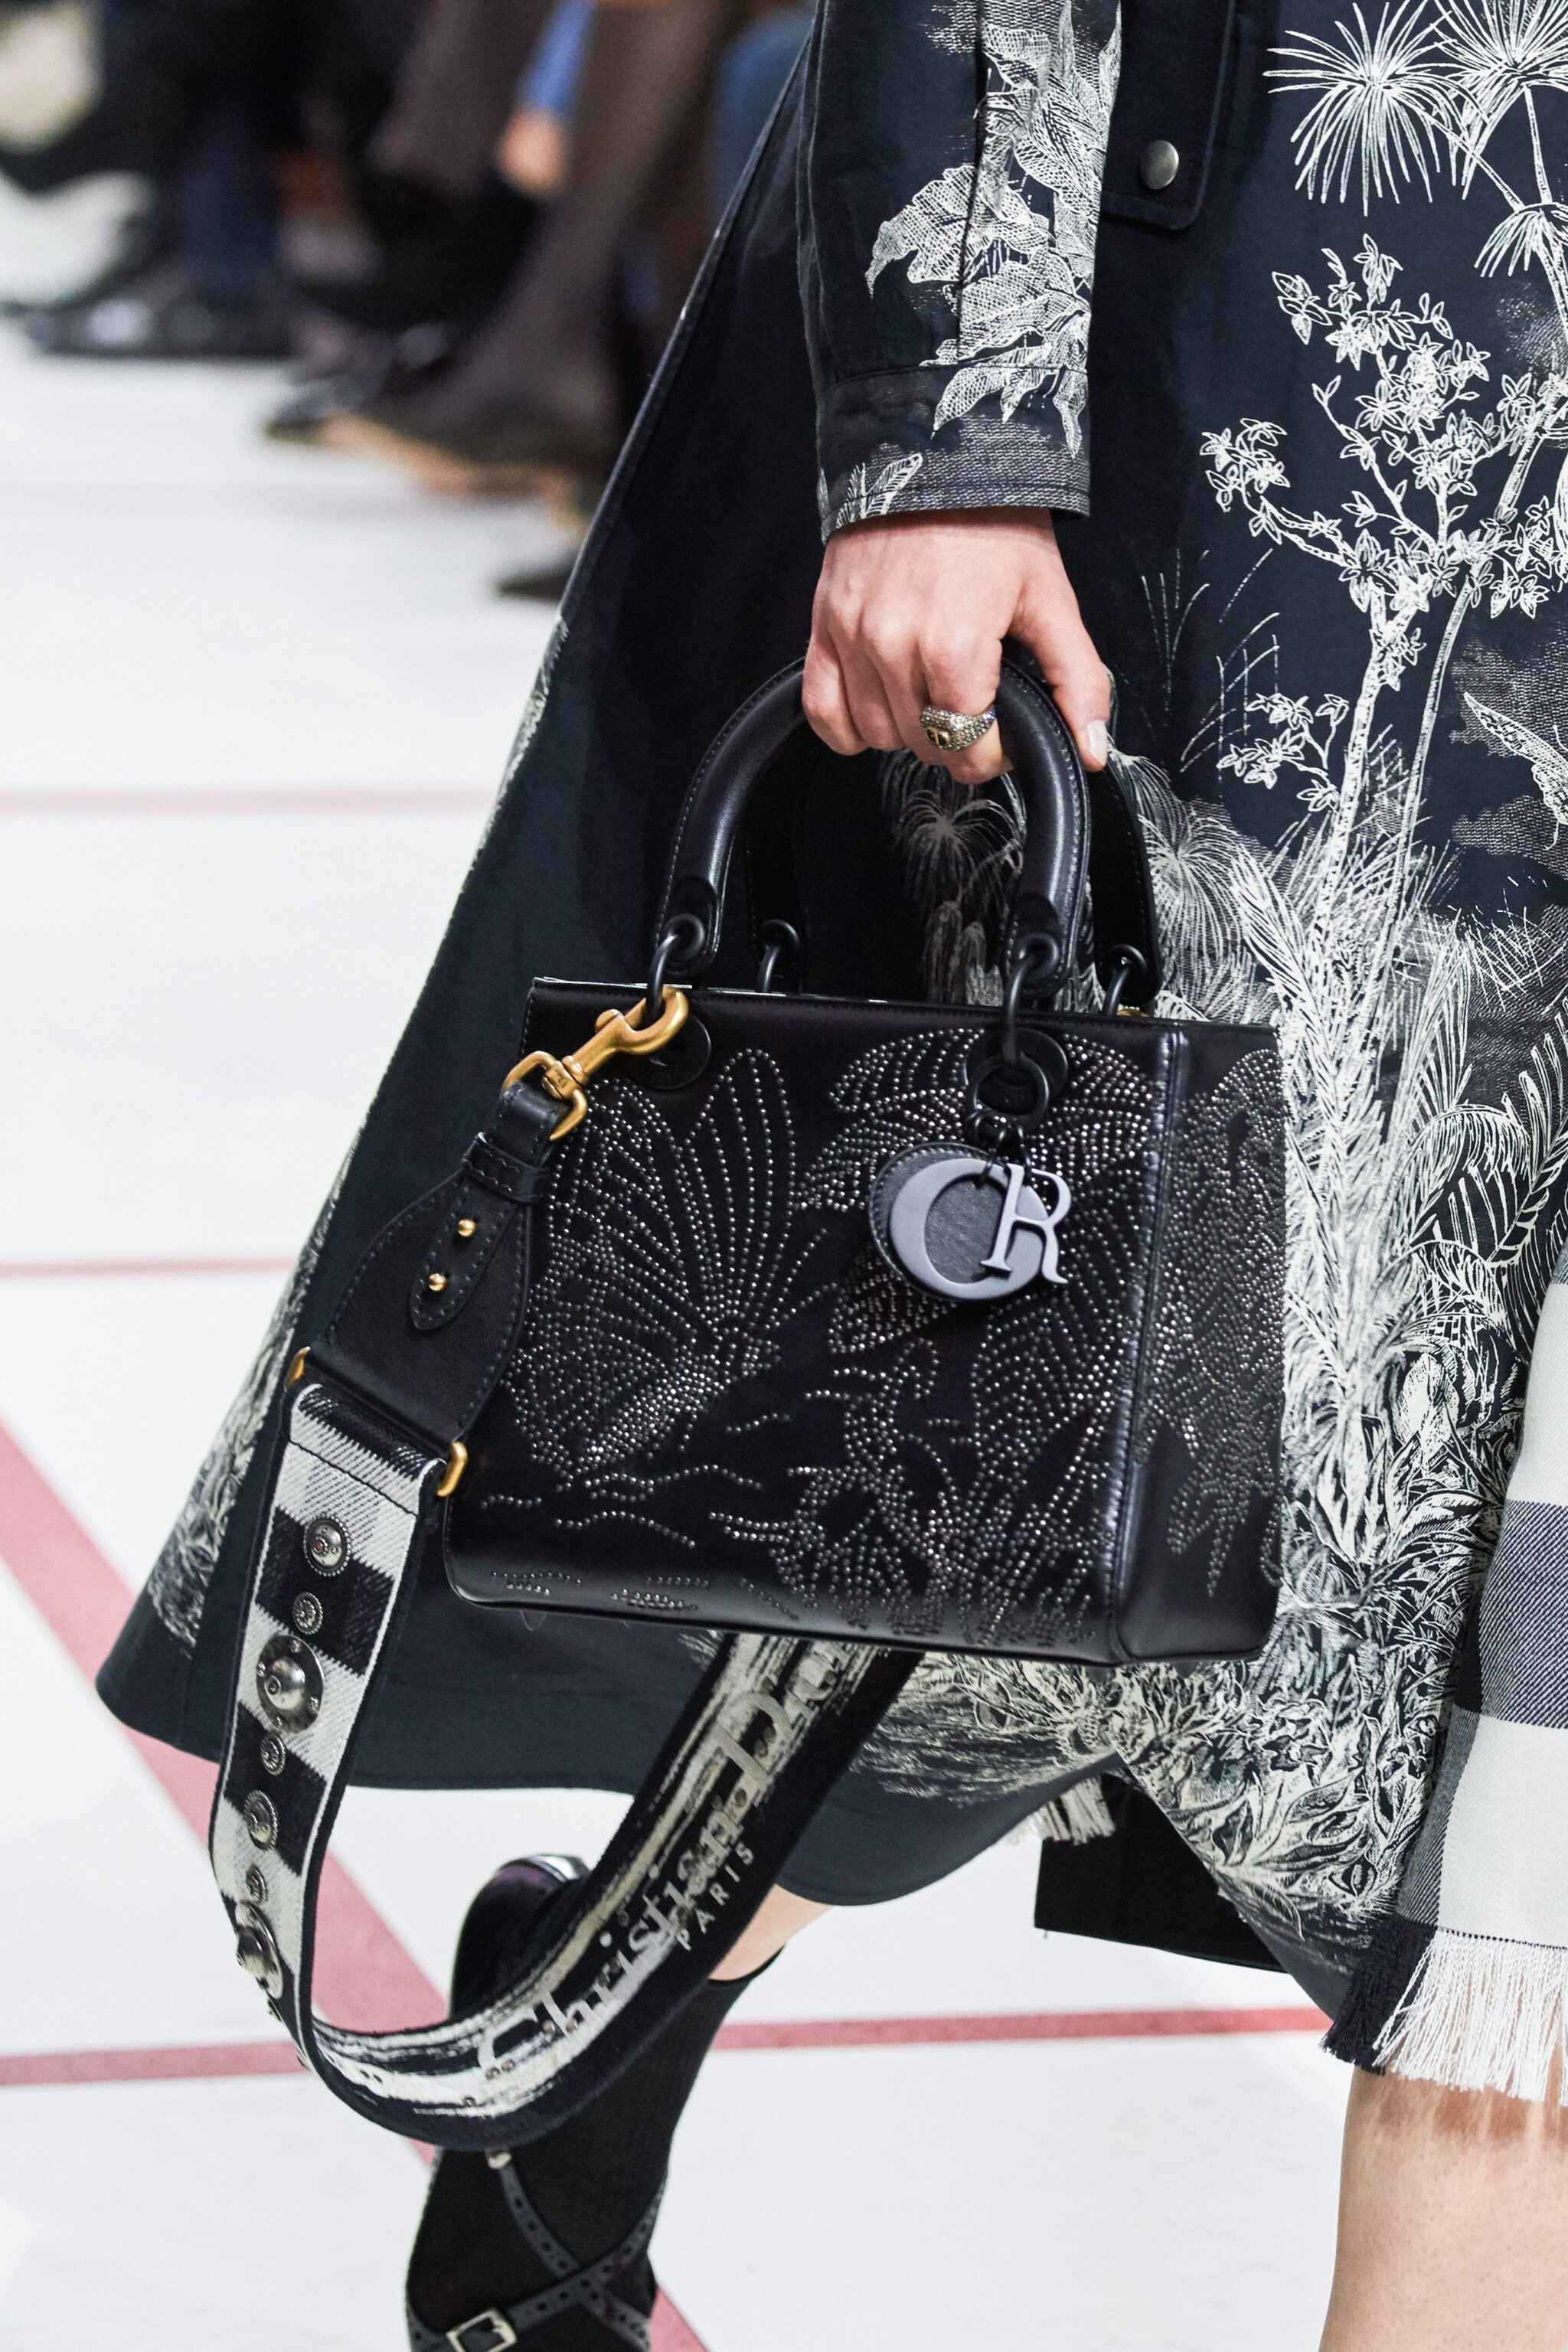 Dior Fall/Winter 2019 Runway Bag Collection | Spotted Fashion